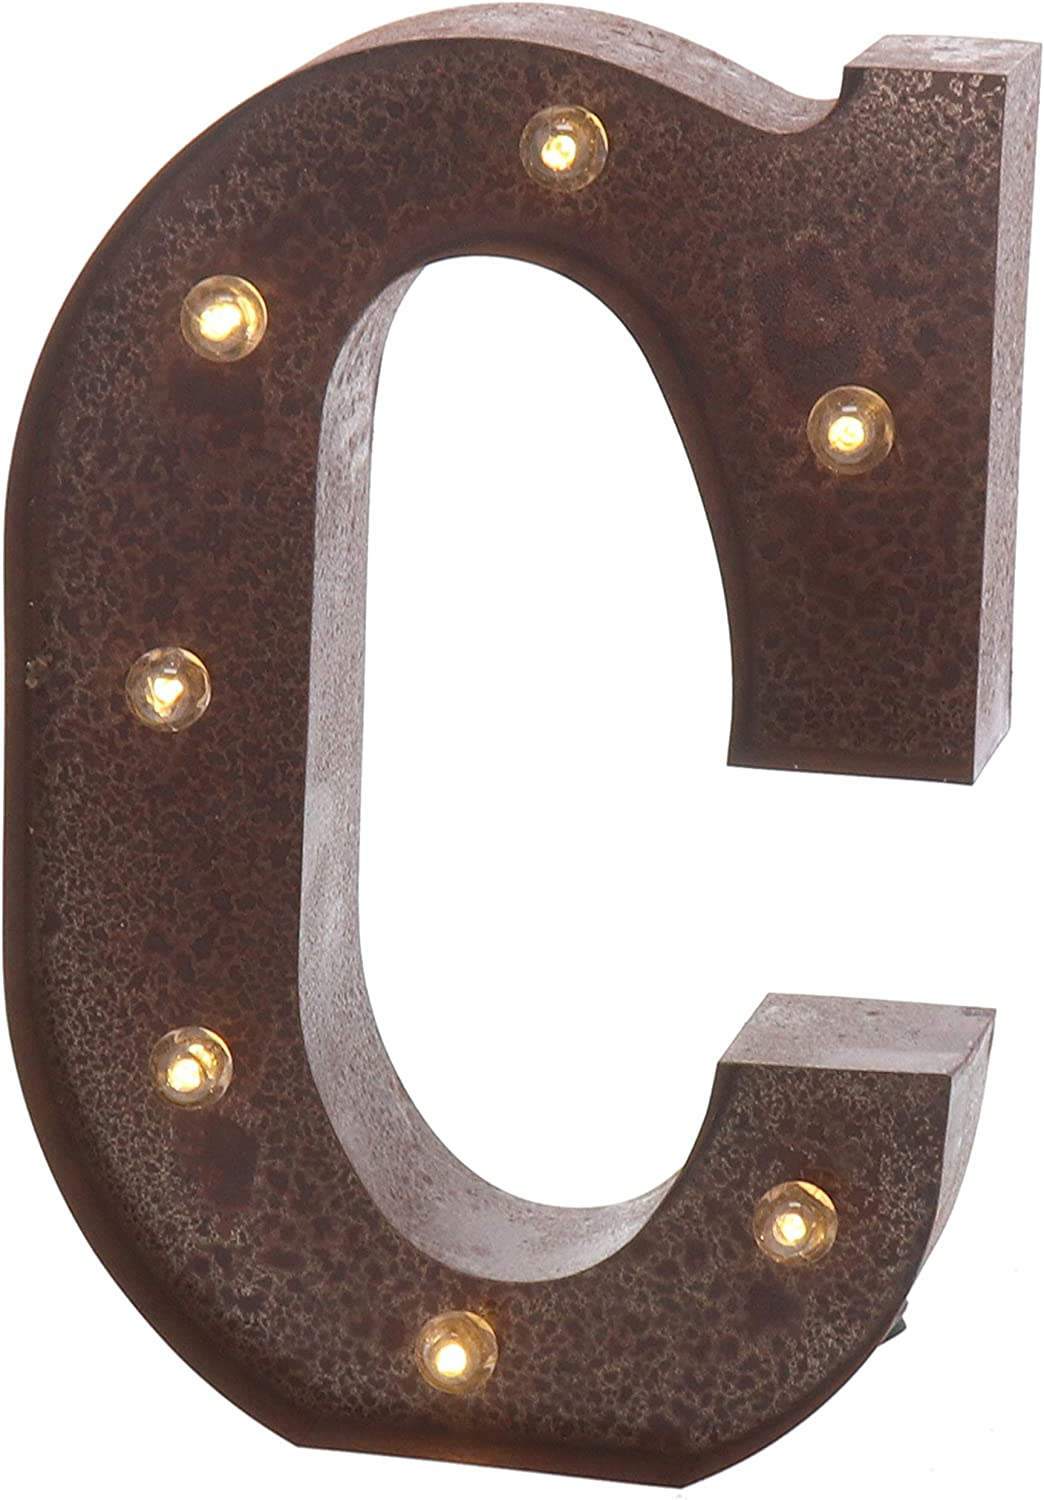 """Barnyard Designs Metal Marquee Letter Flat C Light Up Wall Initial Wedding, Home and Bar Decoration 12"""" (Rust)"""